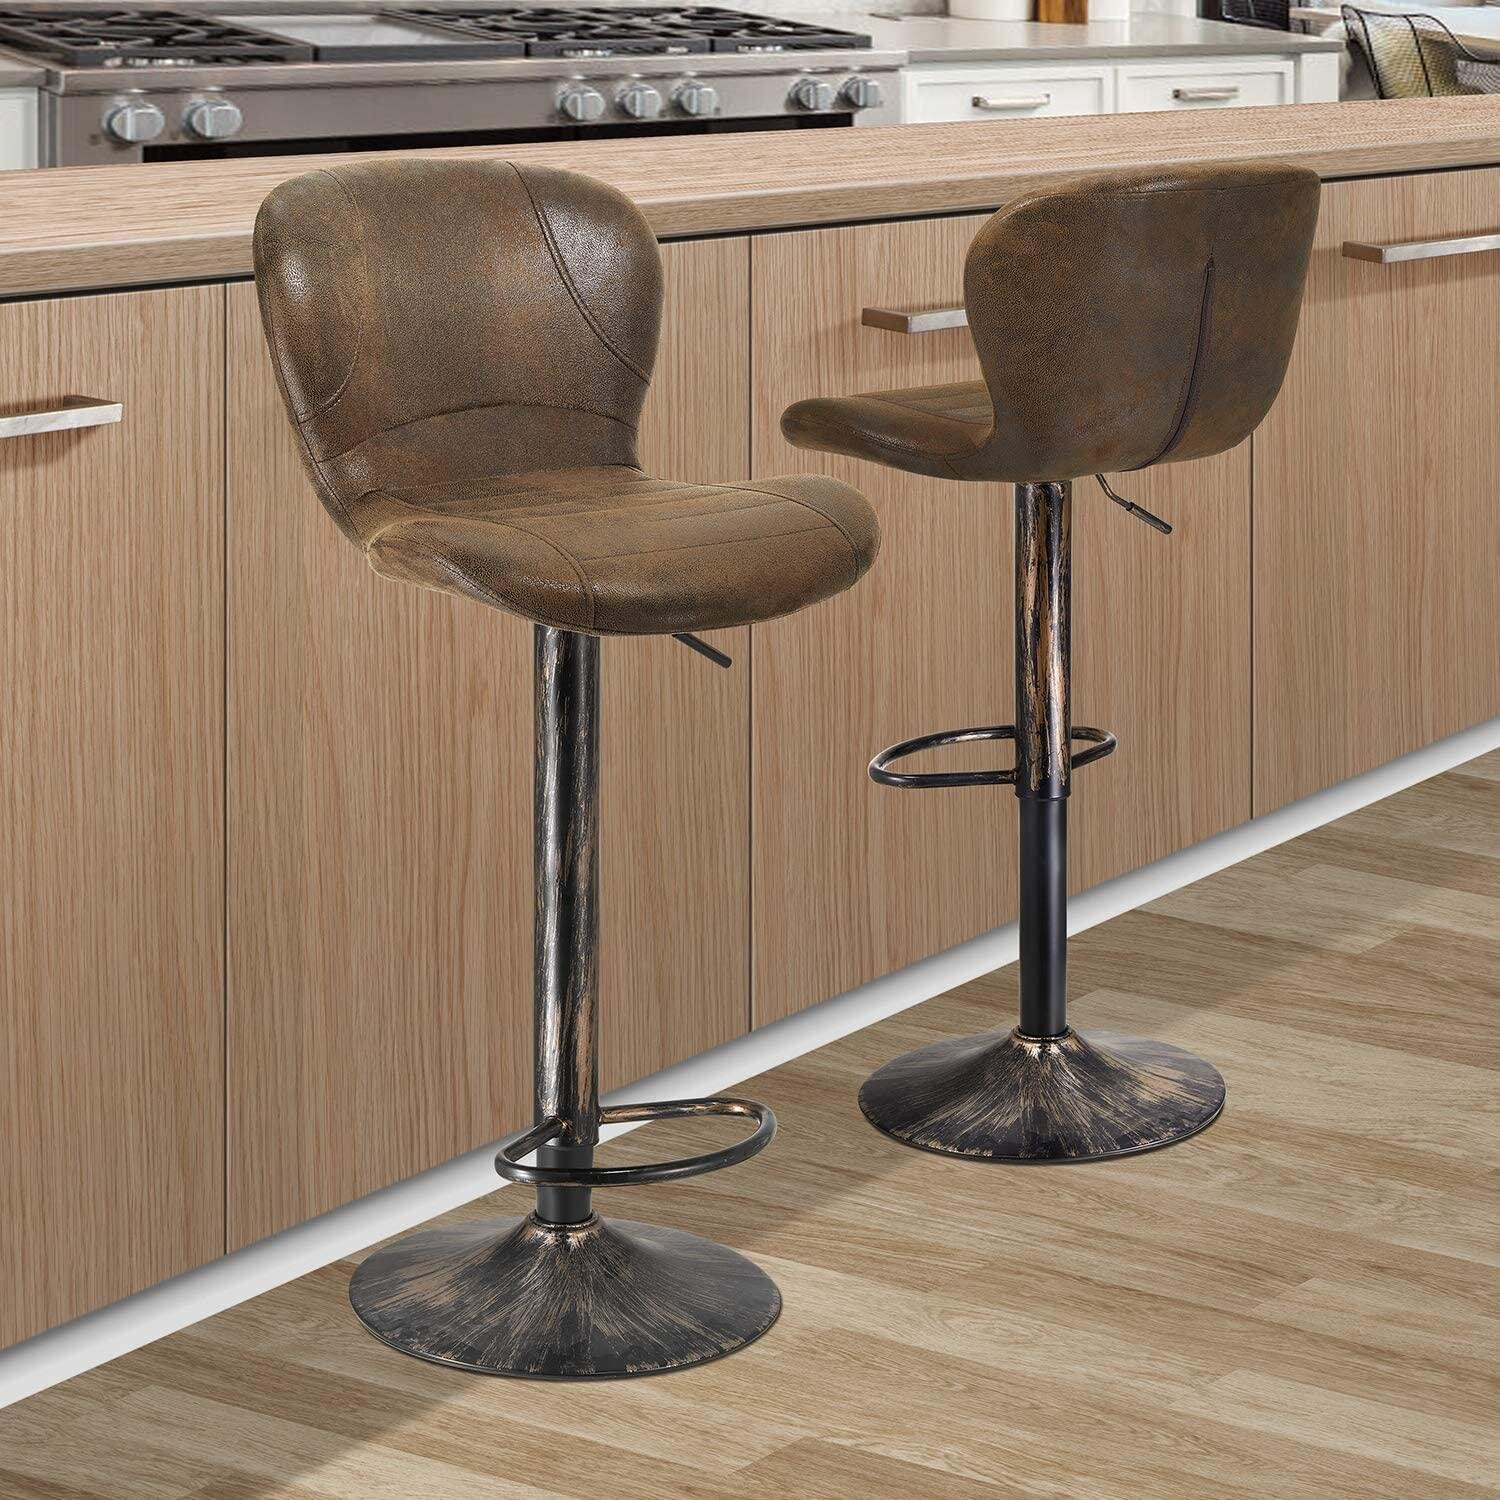 Bar Stools Set Of 9 Height Adjustable Barstools Swivel Counter Chairs With  Backrest PU Leather And Unique Metal Frame Barstool Chairs For Kitchen ...